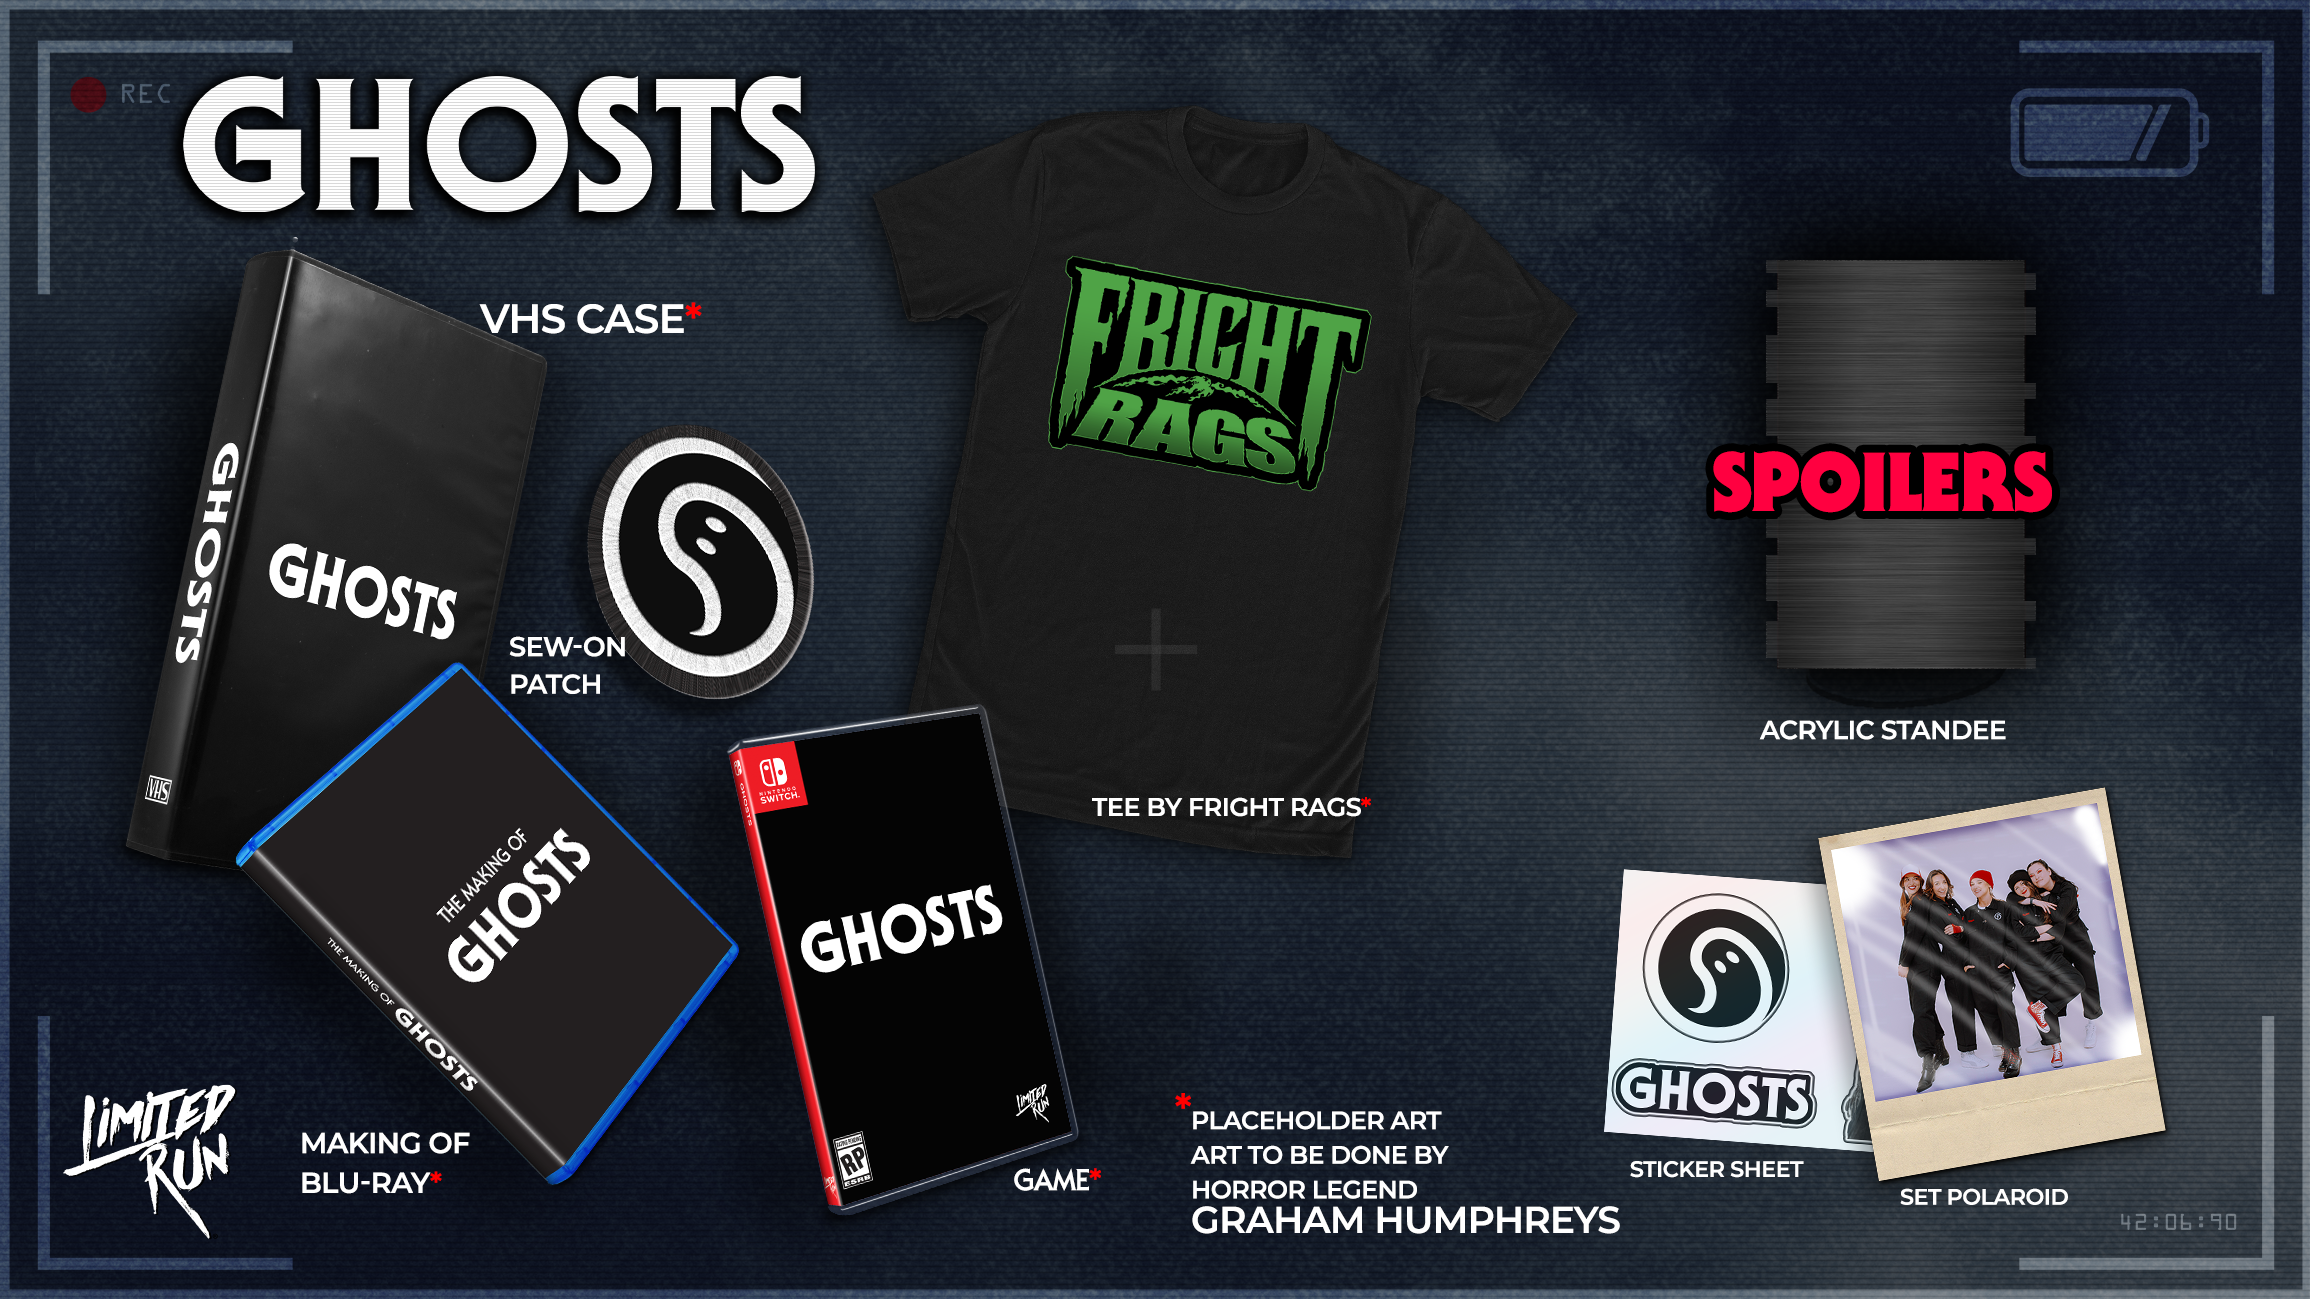 GHOSTS Collector's Edition by Limited Run Games for Nintendo Switch